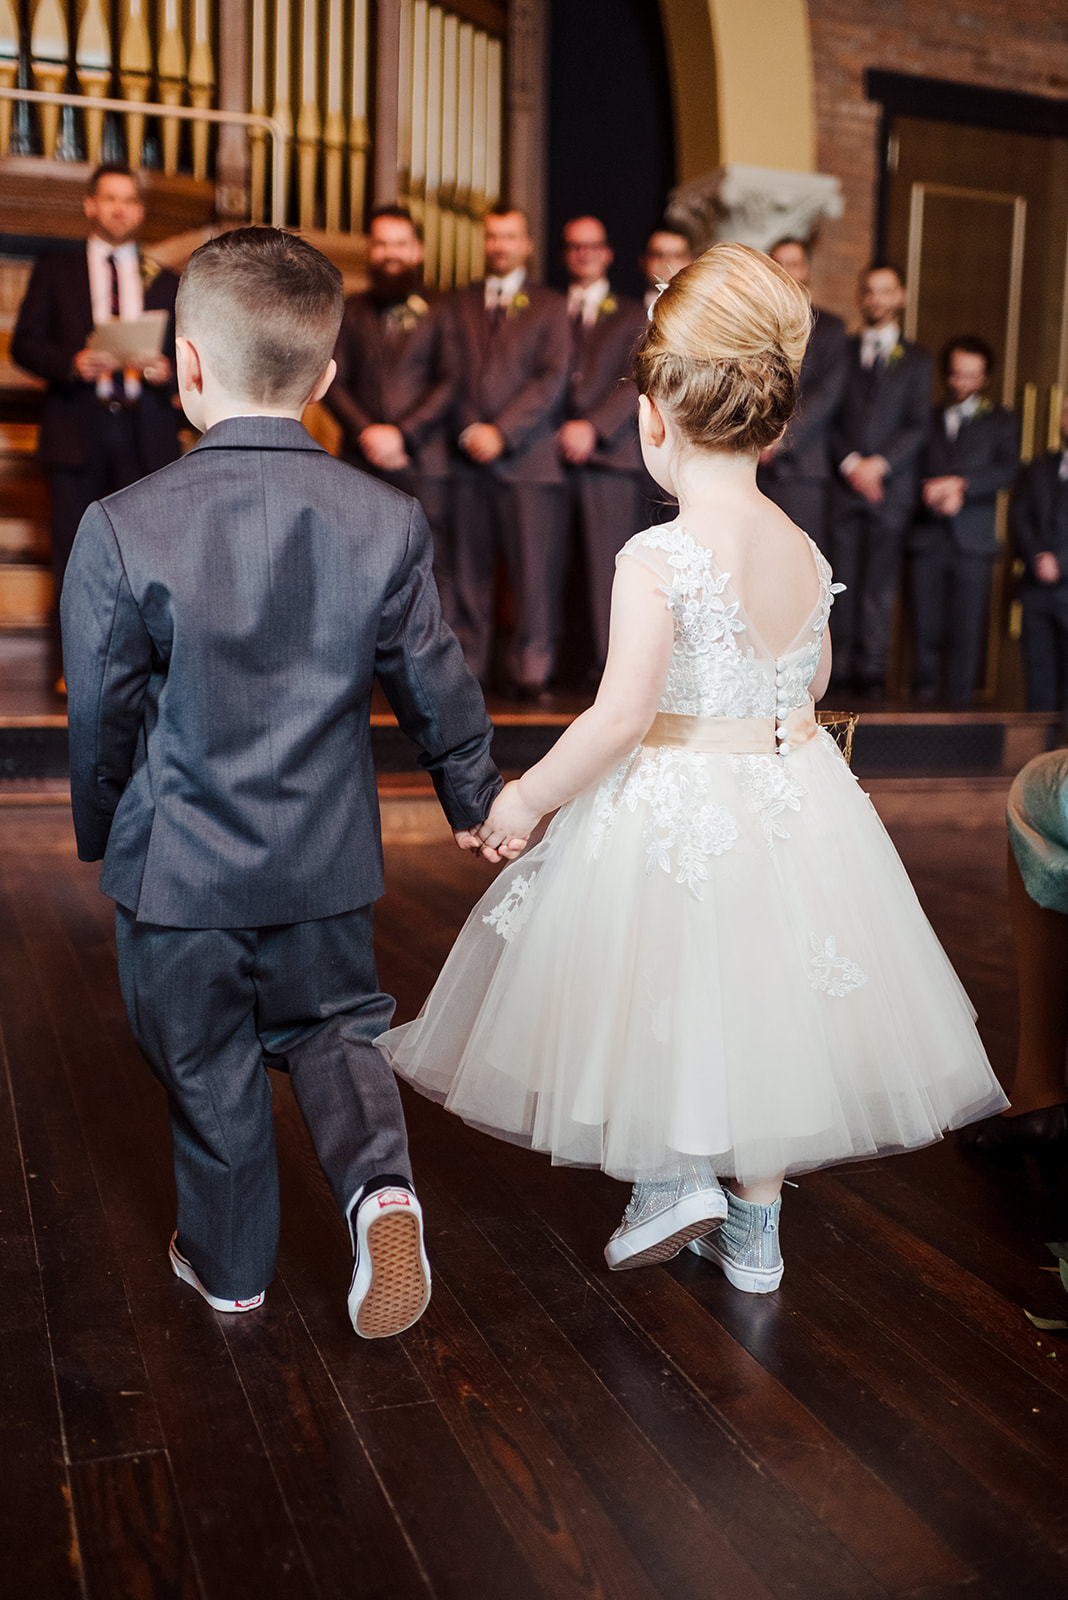 Flower girl and ring bearer: Nashville wedding at Clementine featured on Nashville Bride Guide